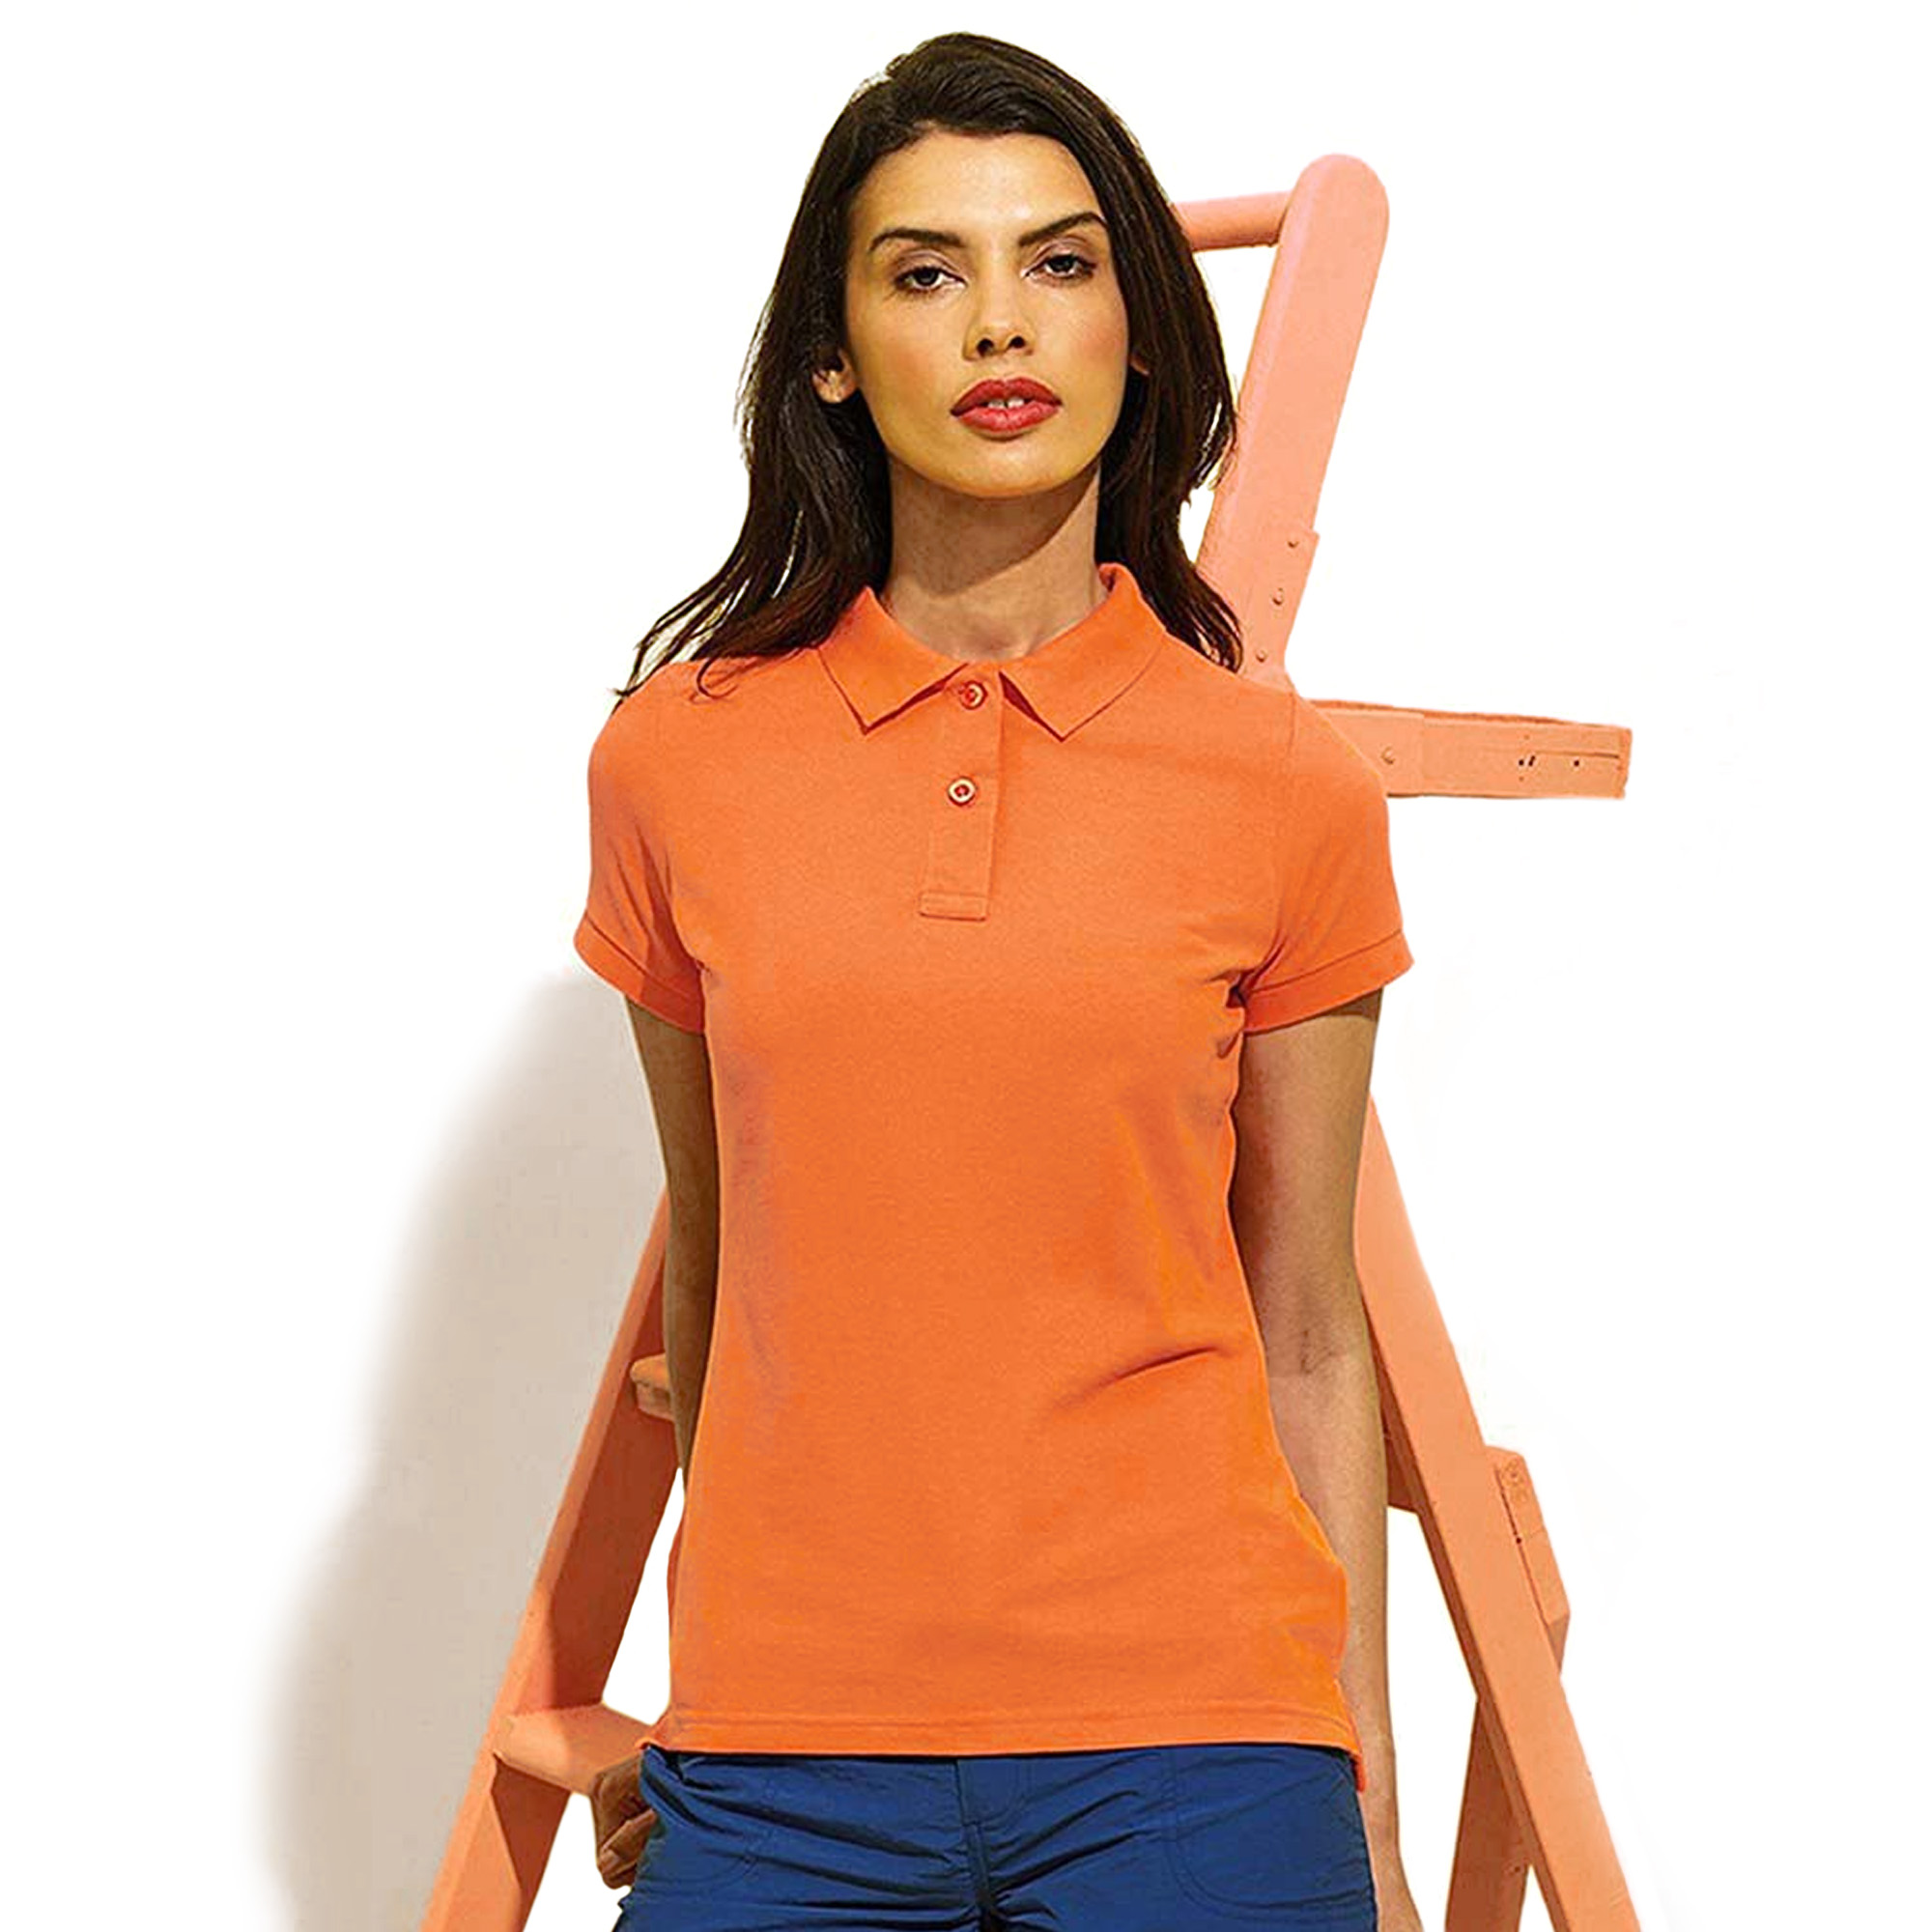 b0e07f1a Asquith & Fox Womens/ladies Short Sleeve Performance Blend Polo Shirt Lime  M. About this product. Picture 1 of 2; Picture 2 of 2